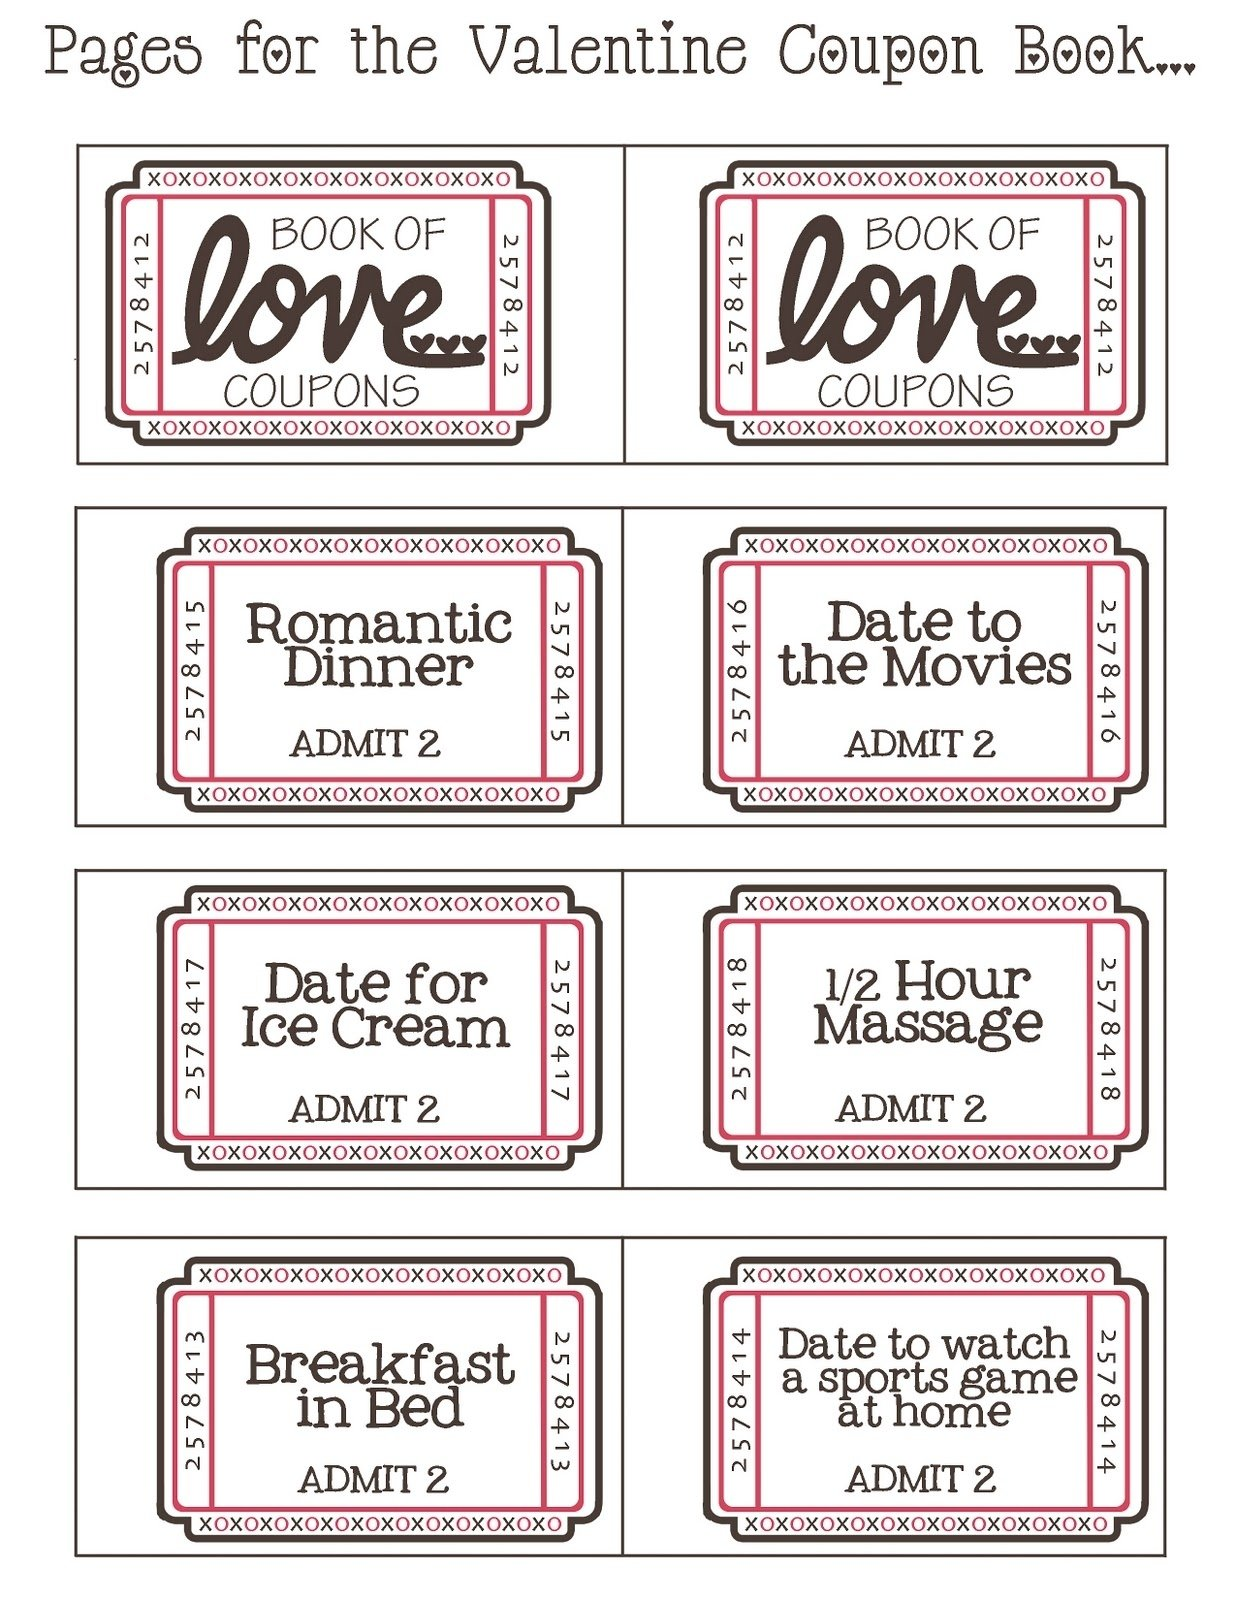 10 Stylish Love Coupon Ideas For Her mommyday crafternight free printable valentine coupon book 2 2021